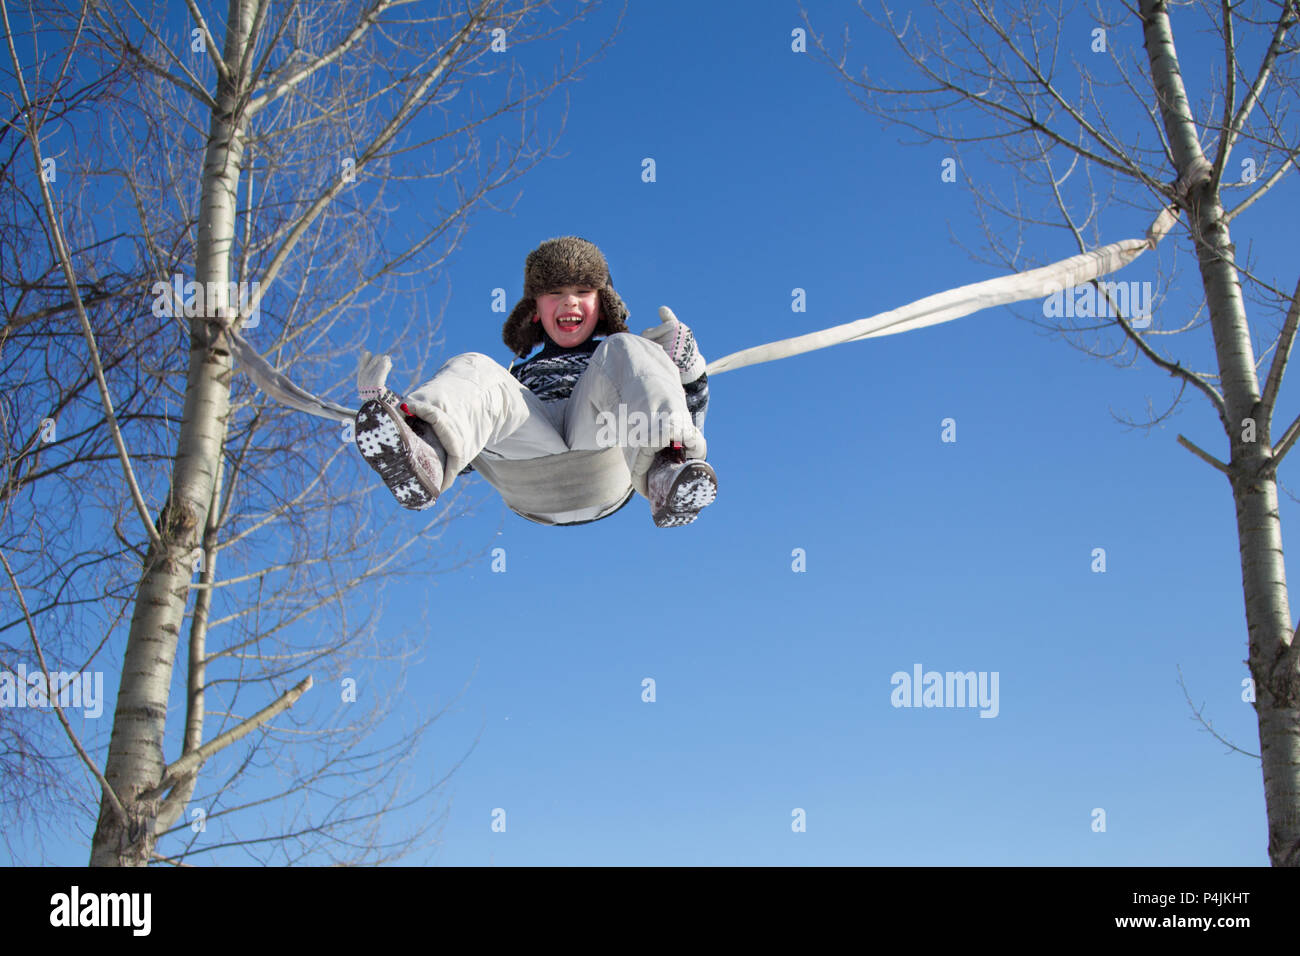 A little boy is riding a rope swing on a winter day high - Stock Image